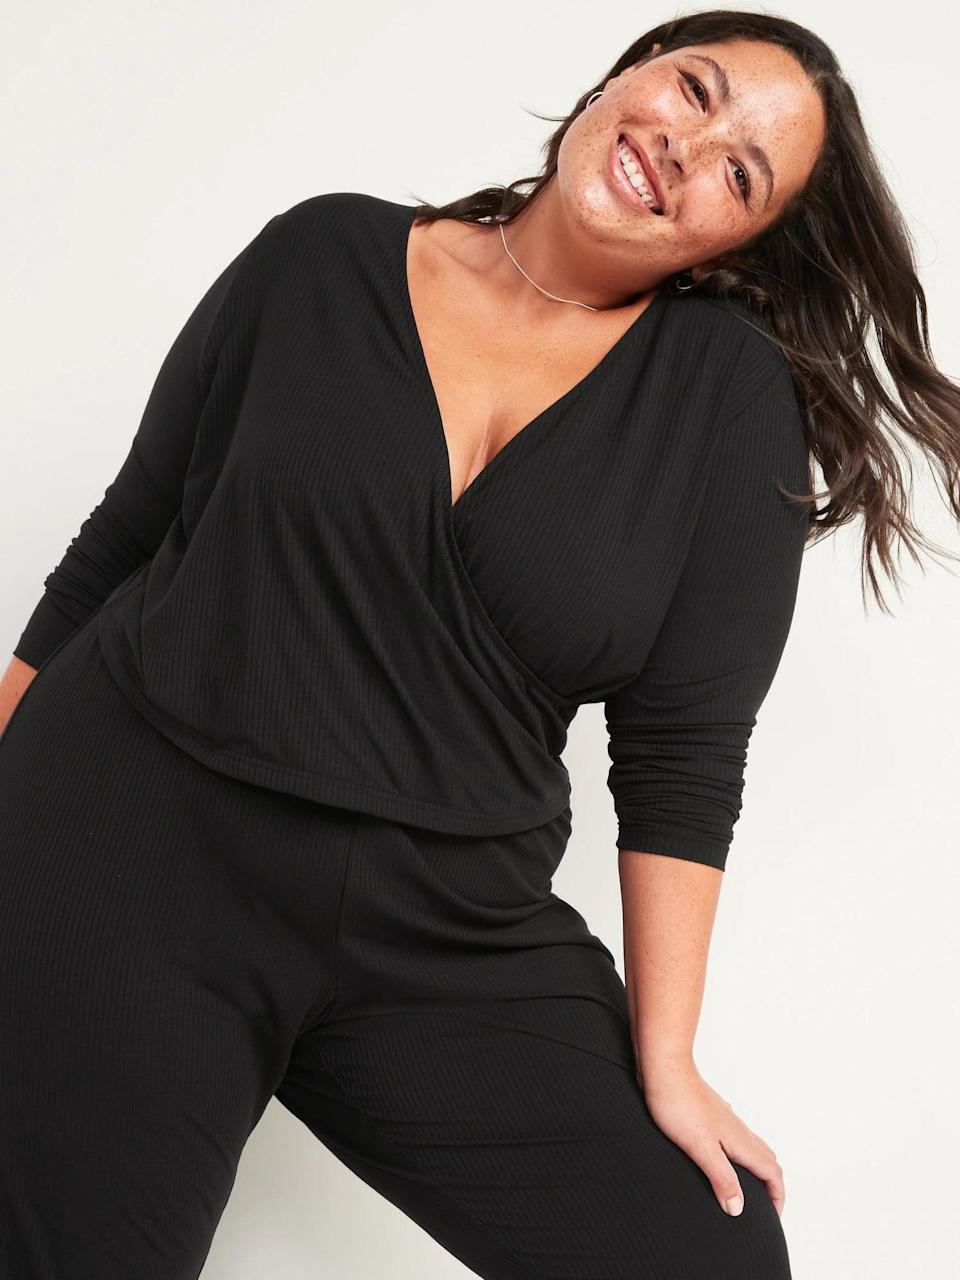 <p>This <span>Old Navy Sunday Sleep Rib-Knit Faux-Wrap Pajama Top</span> ($25) is what we'd like to coin as elevated loungewear. It's more pulled together than an old t-shirt, but feels so comfortable. Pair it with the matching <span>Mid-Rise Sunday Sleep Ribbed Pajama Pants</span> ($25).</p>